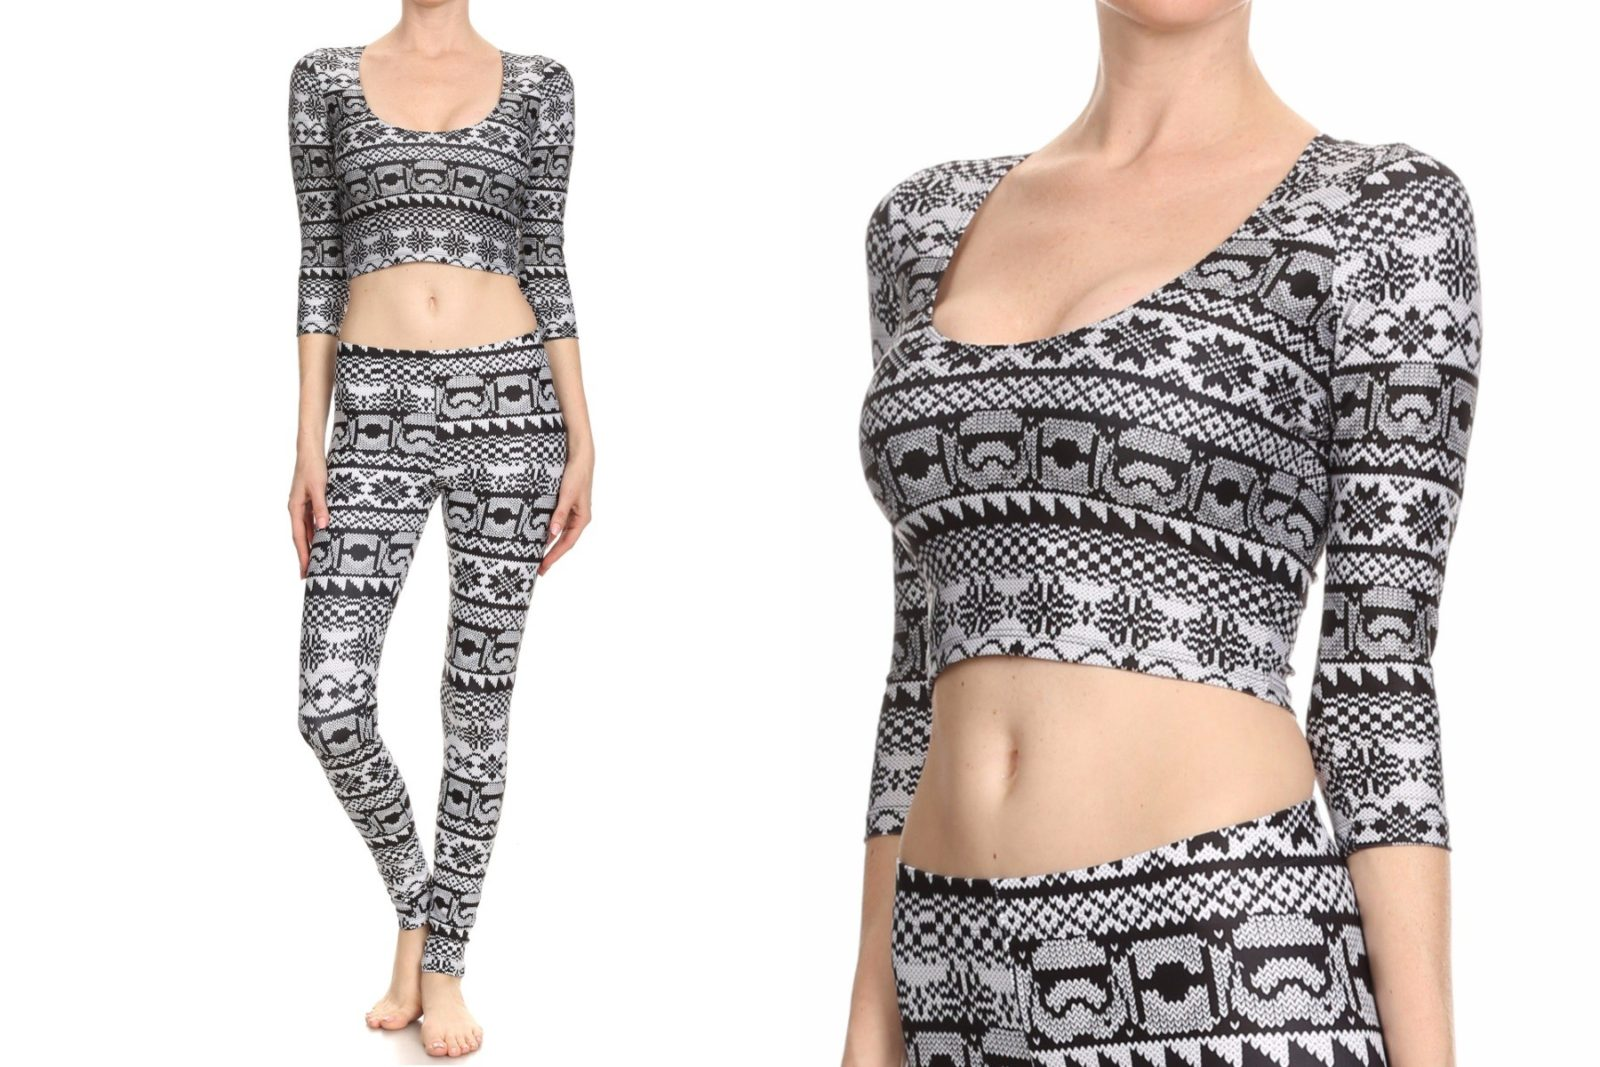 New Poprageous Trooper Fair Isle collection